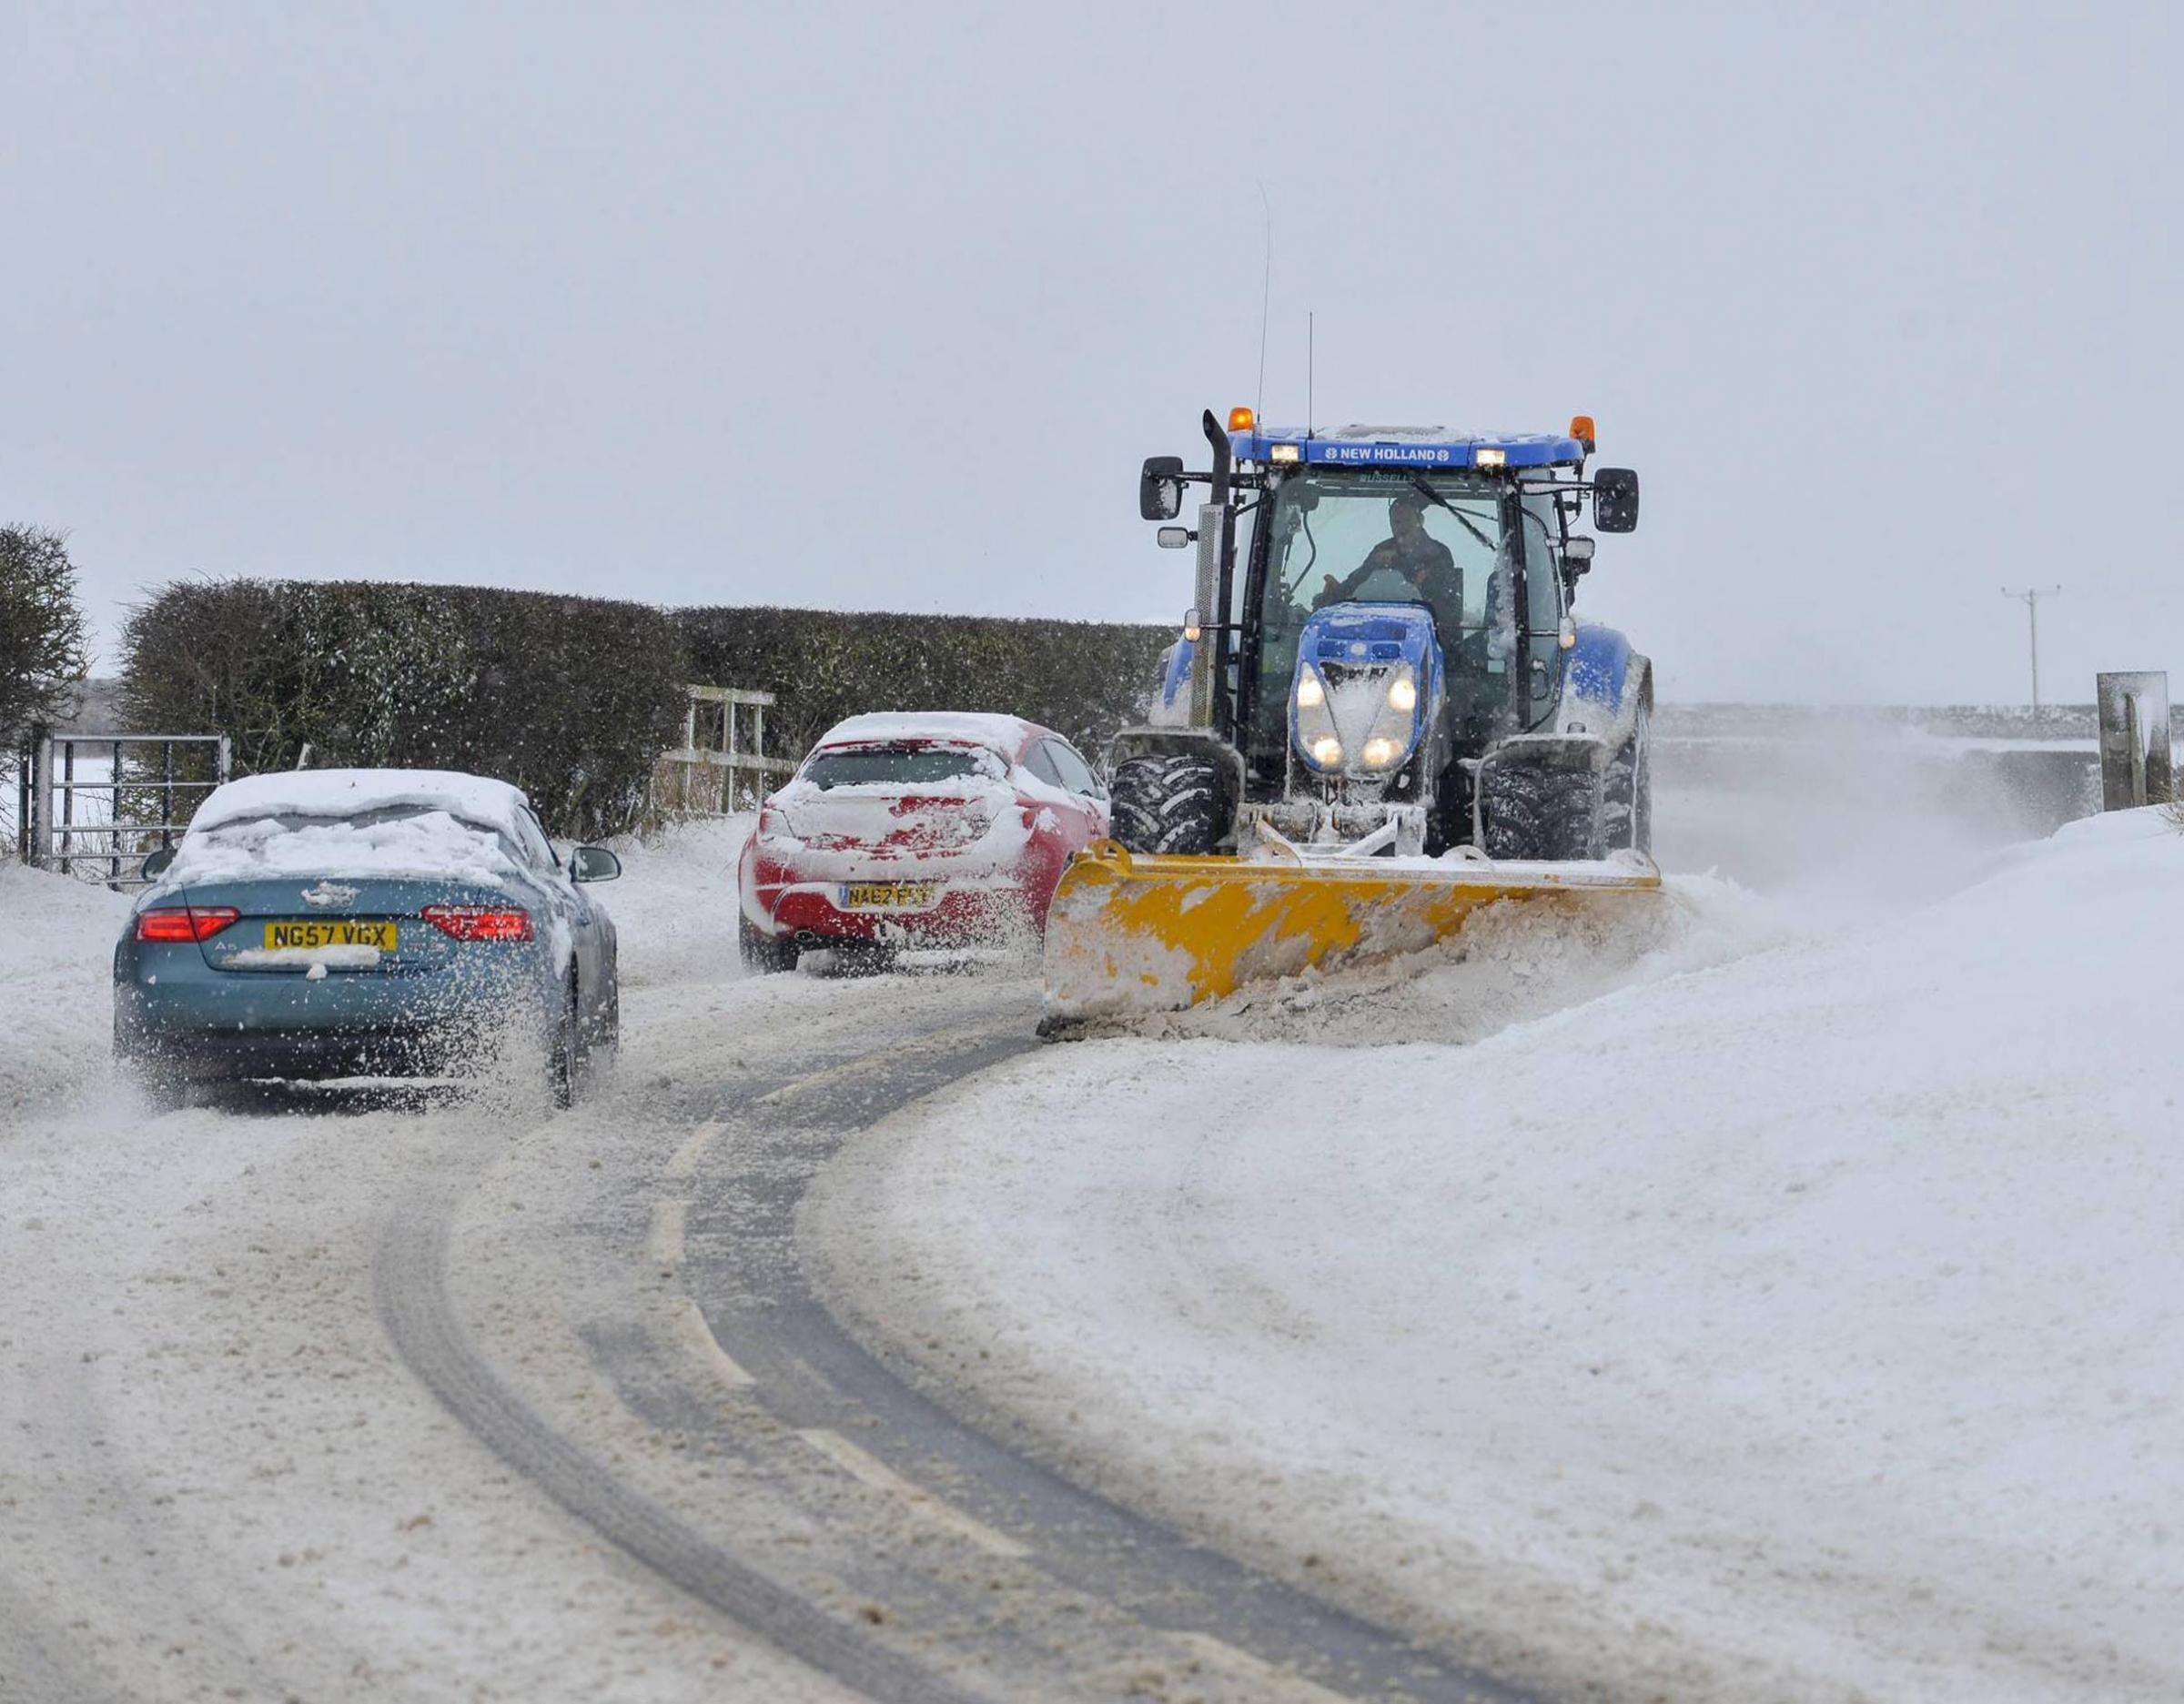 EFFORT: A snow plough trying to clear snow on the B6275 in County Durham during the Beast from the East                                                                     Picture: NORTH NEWS